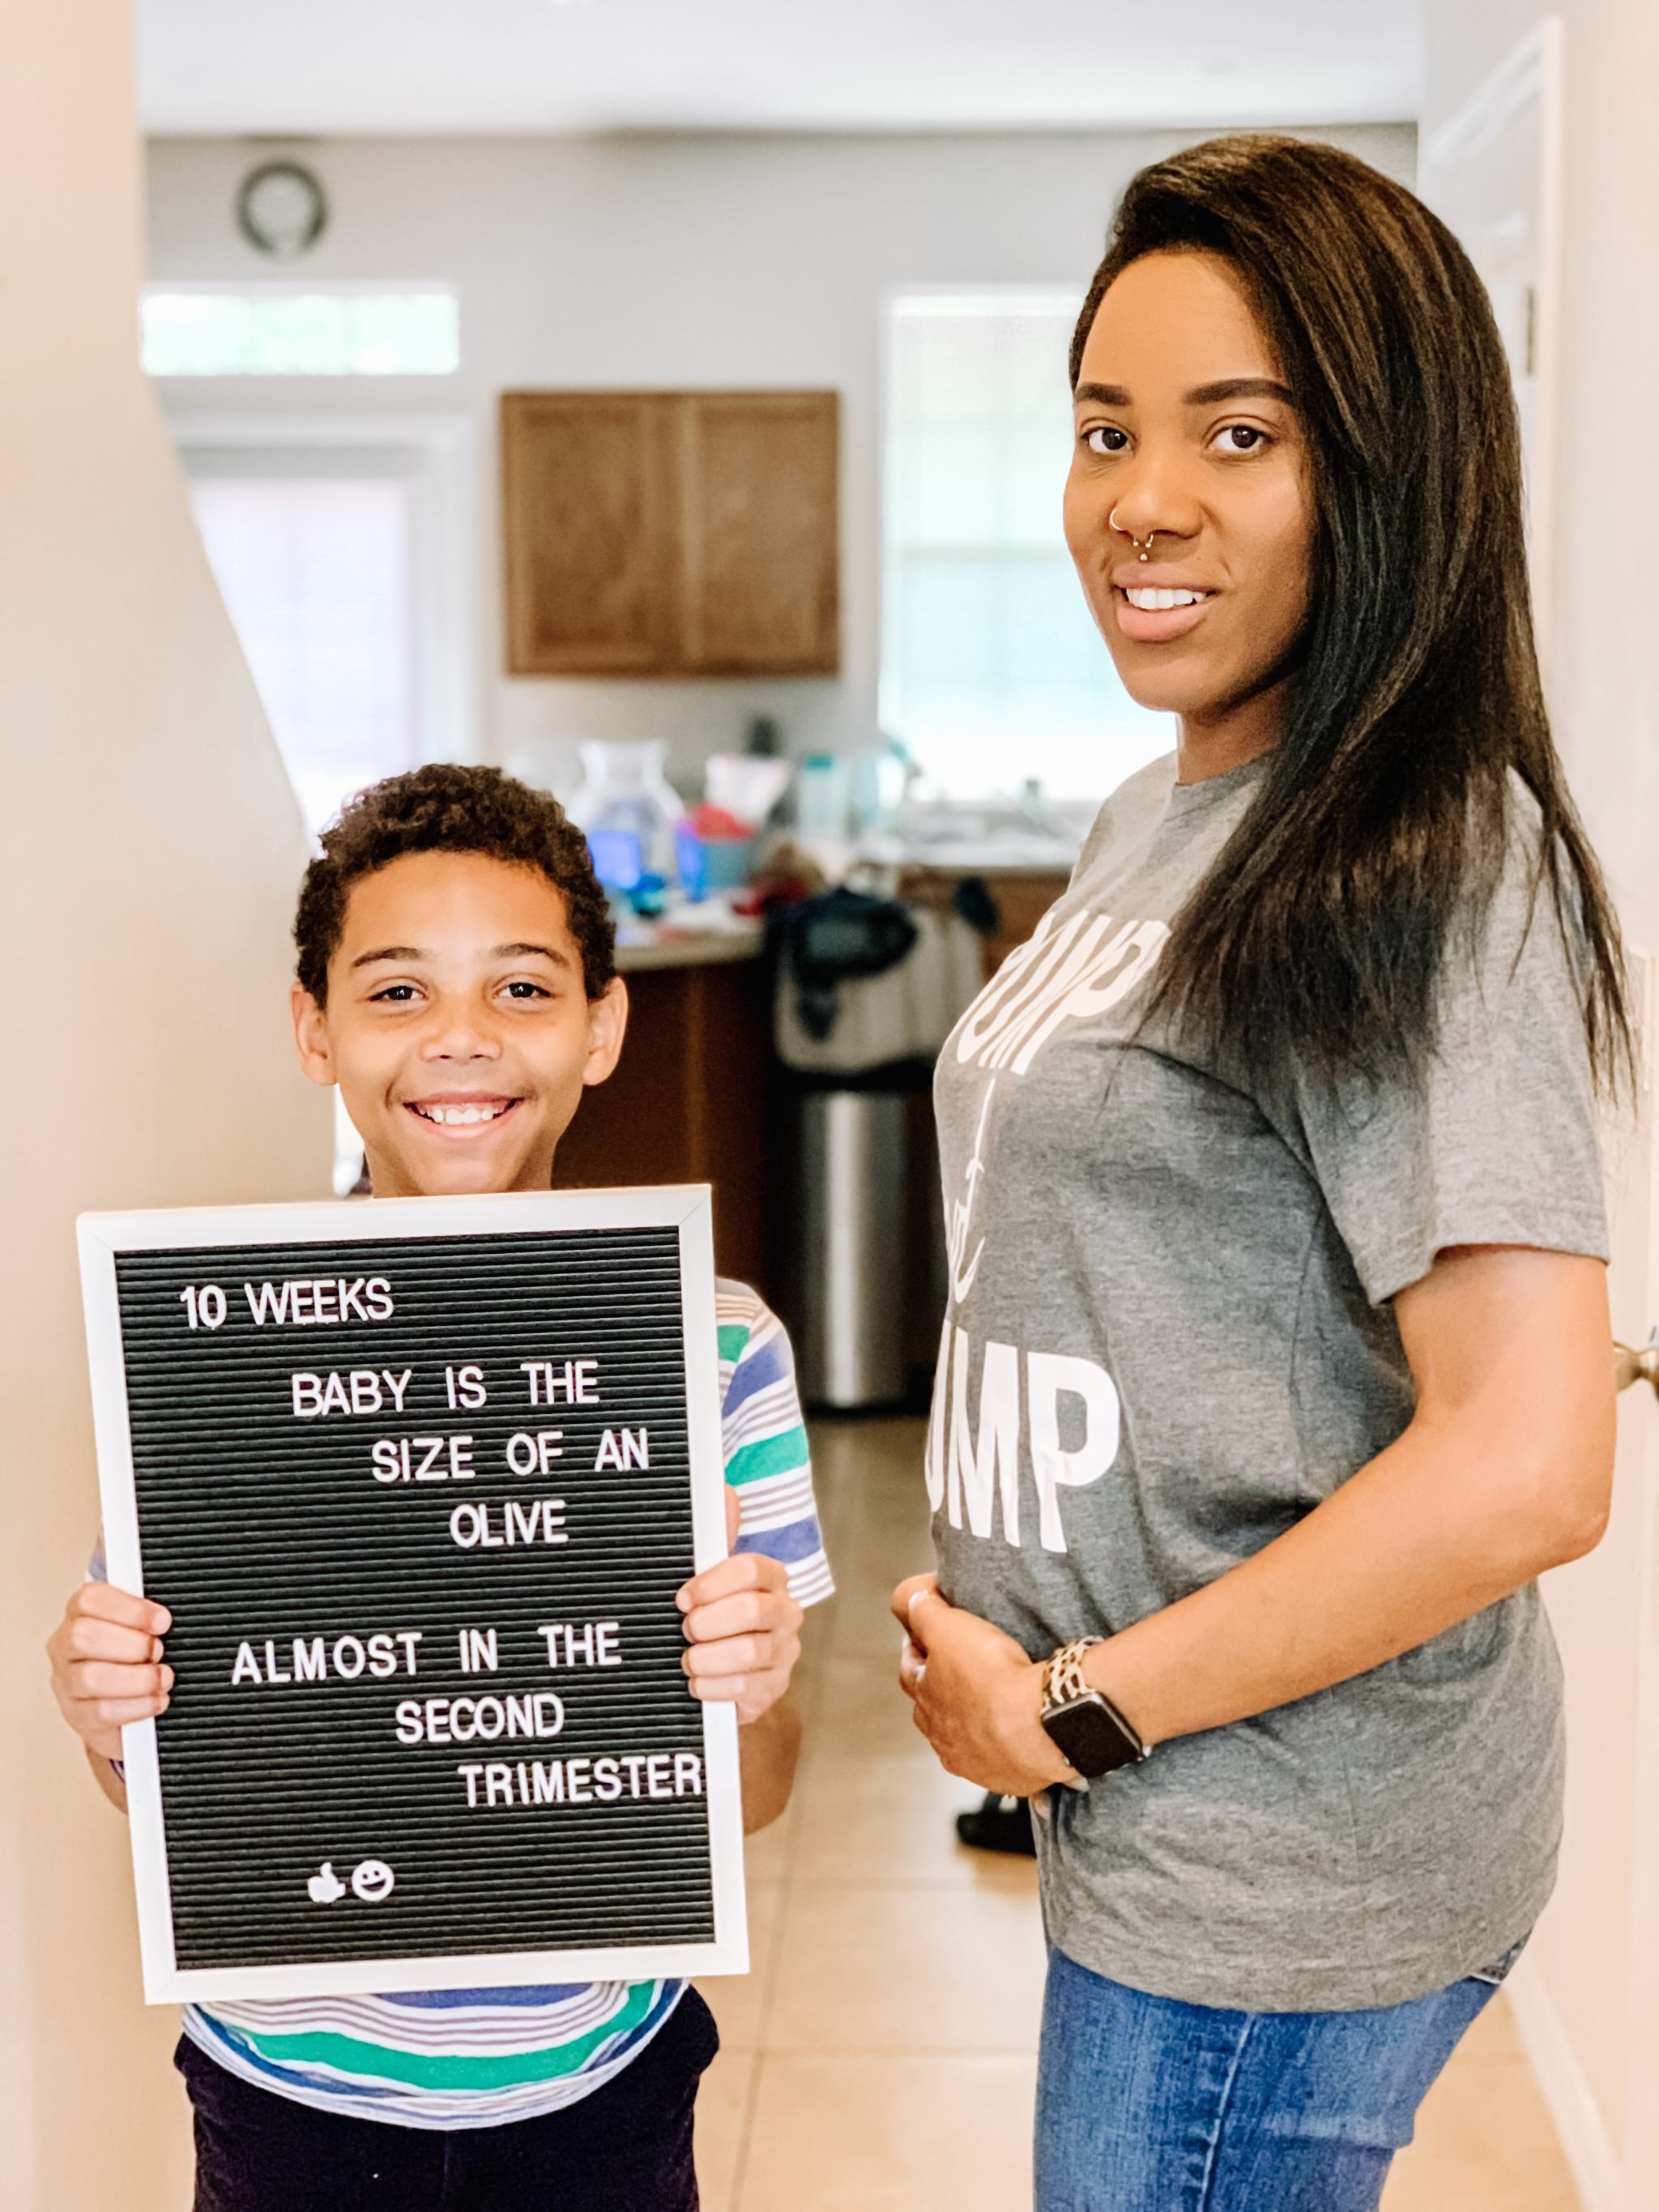 First Trimester: 10 Weeks Pregnant Blog Post - Lola Nicole